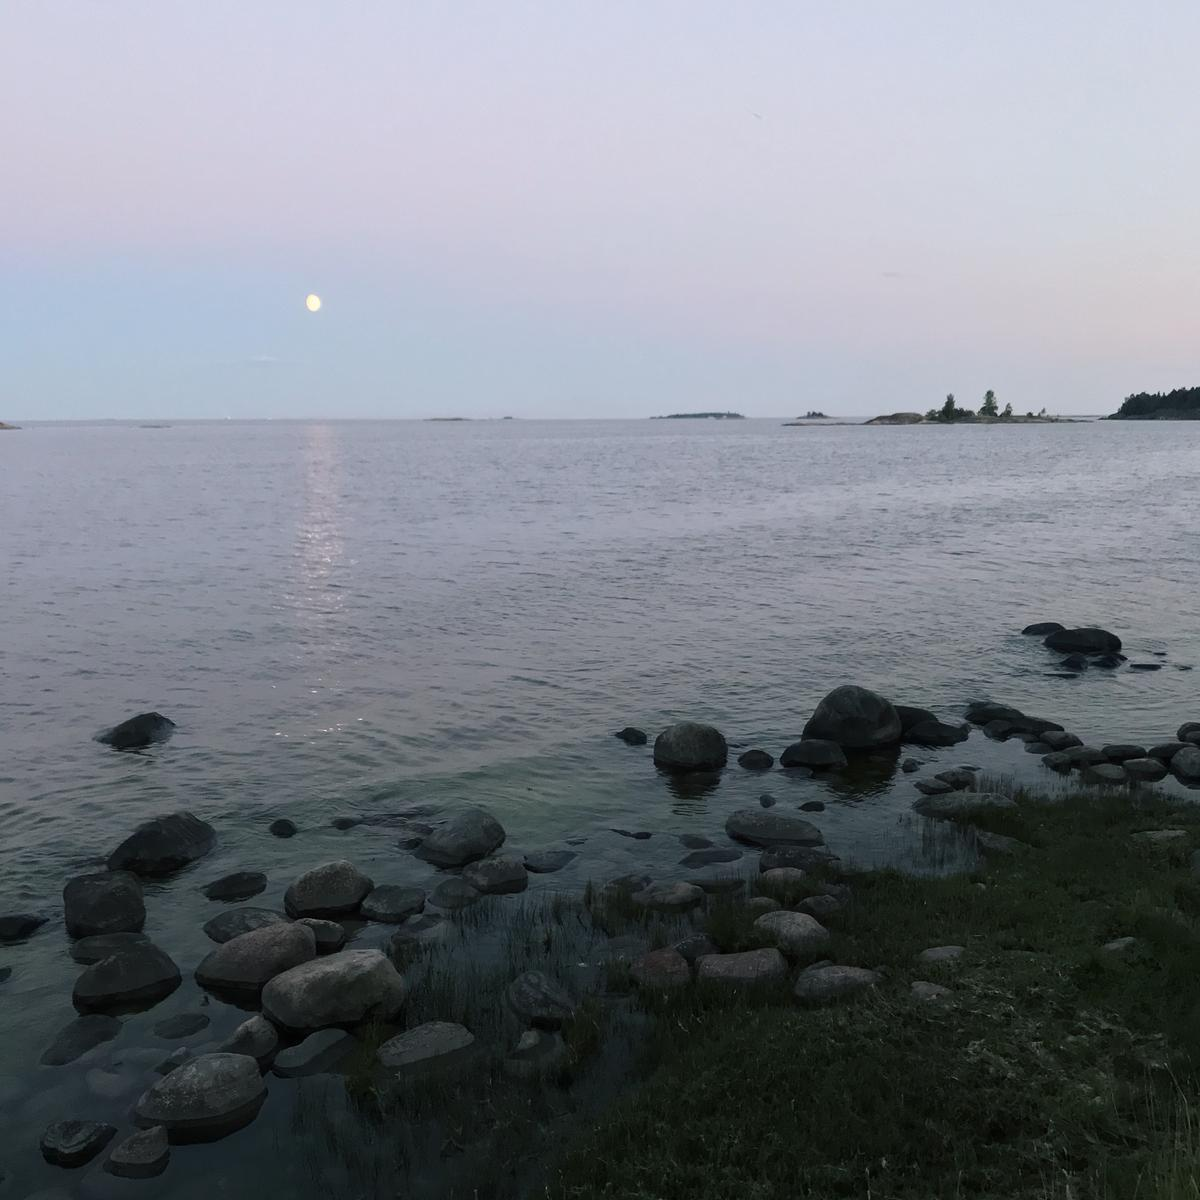 Moon shining over the sea in the evening. There's a rocky shore close to the camera and small islands in the horizon.